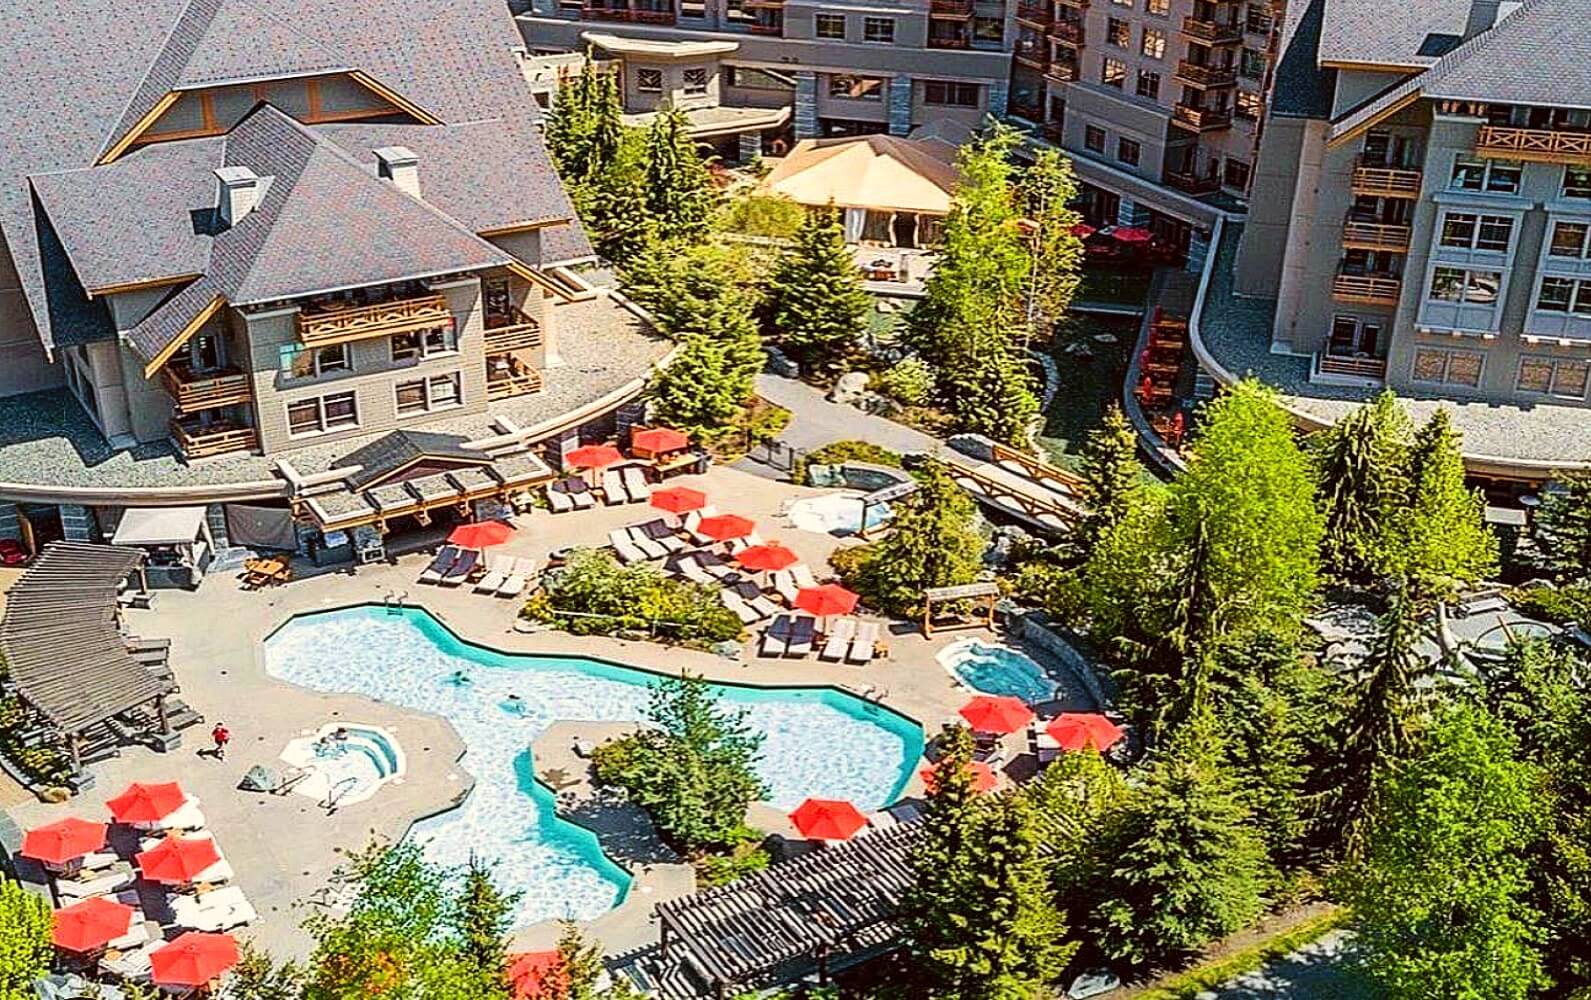 An overview of the Four Seasons Resort Whistler